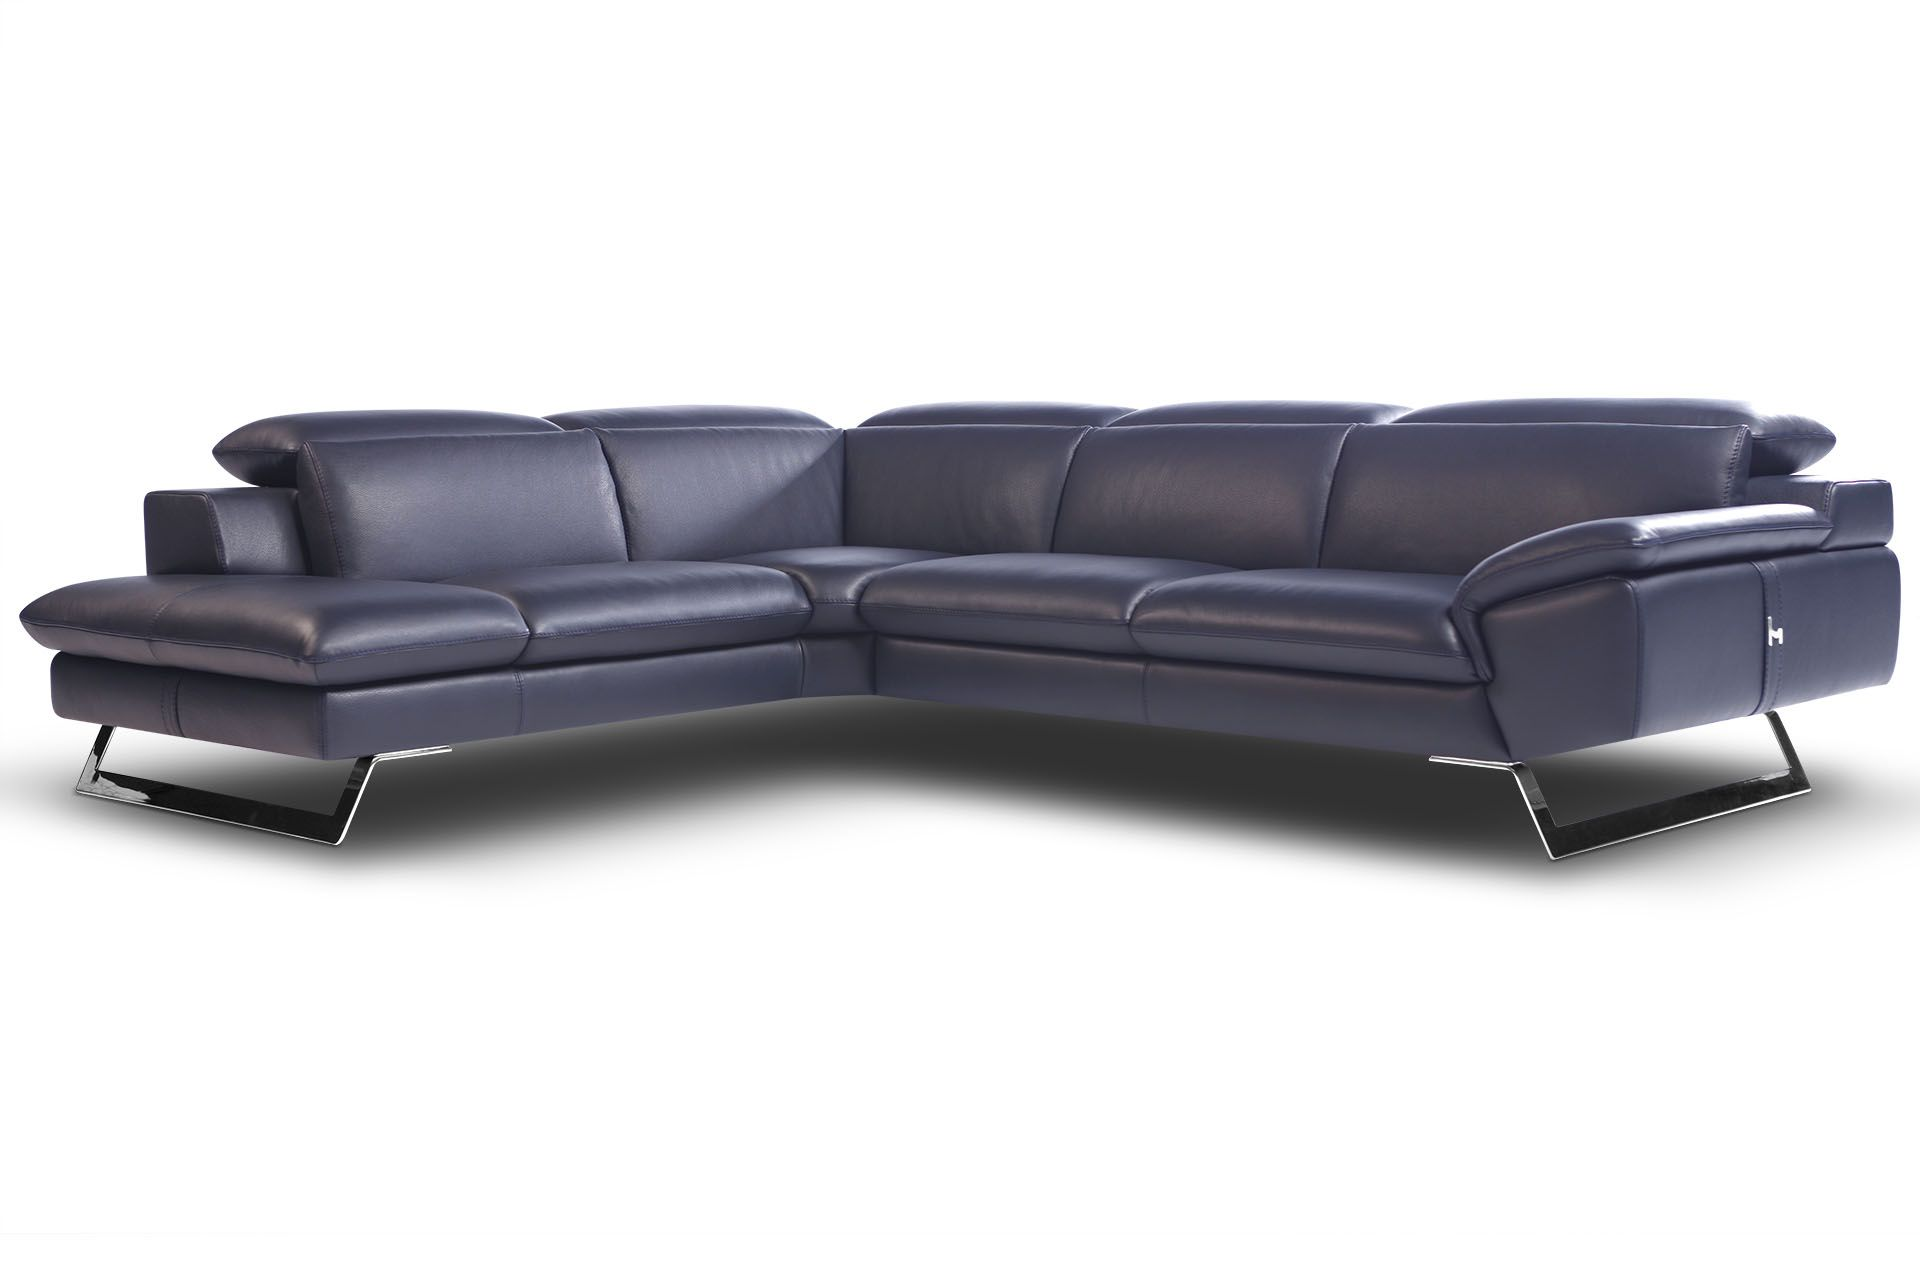 Zuma Nicoletti Home sofa Pinterest